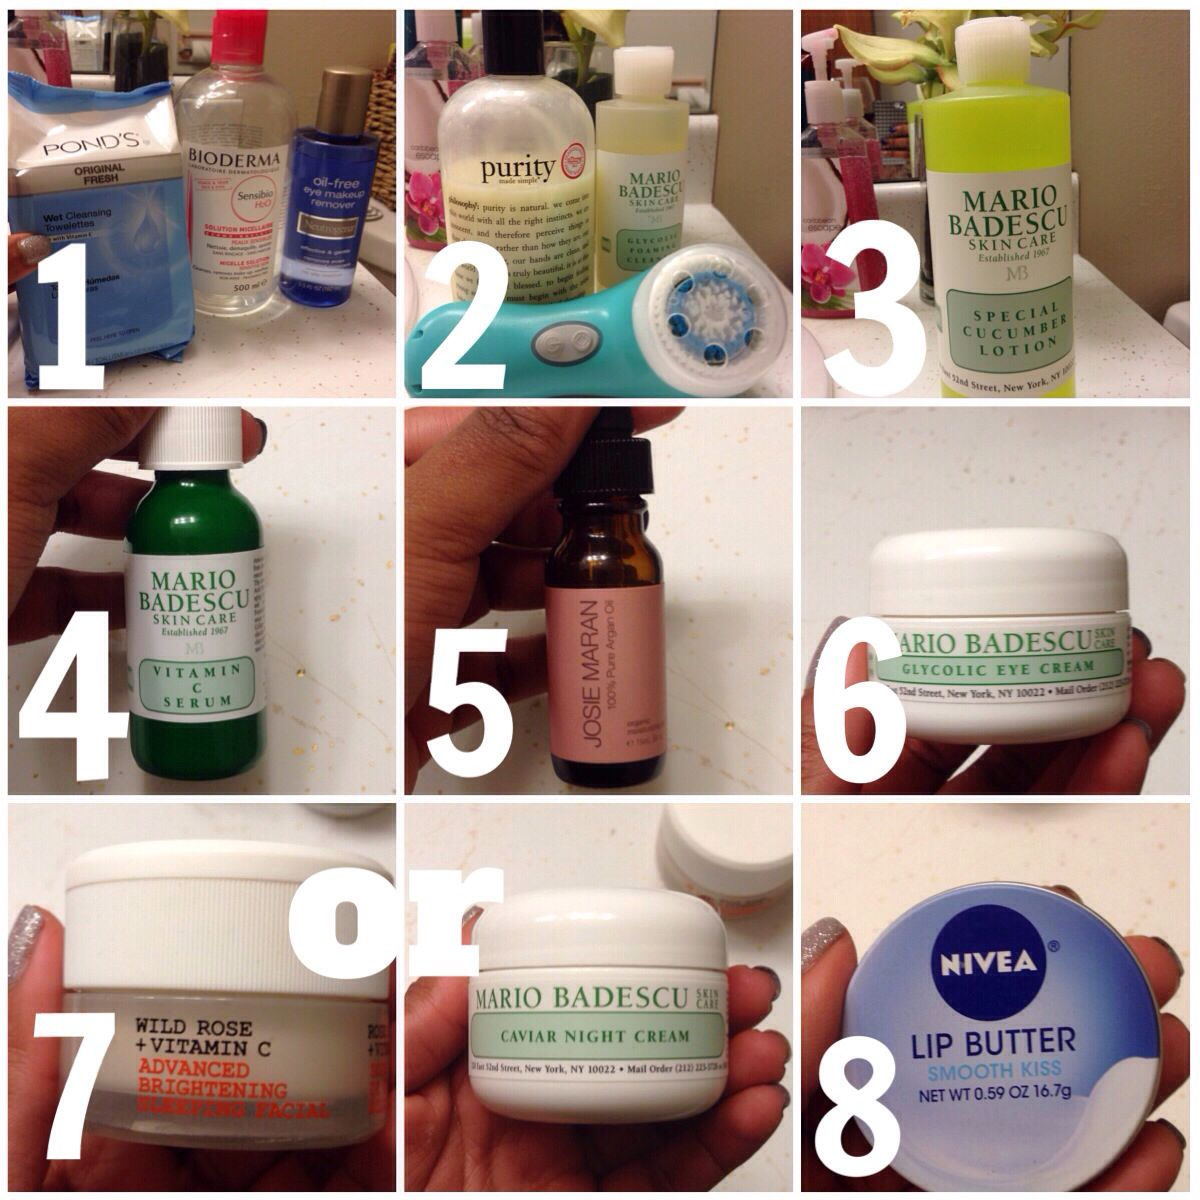 Night time skin care routine 1.Makeup removers> 2.Cleanser> 3.Toner> 4.Serum> 5.Oil> 6.Eye cream> 7.Night cream (I use 2 depending on what my skin needs at the time)> 8.Lip balm